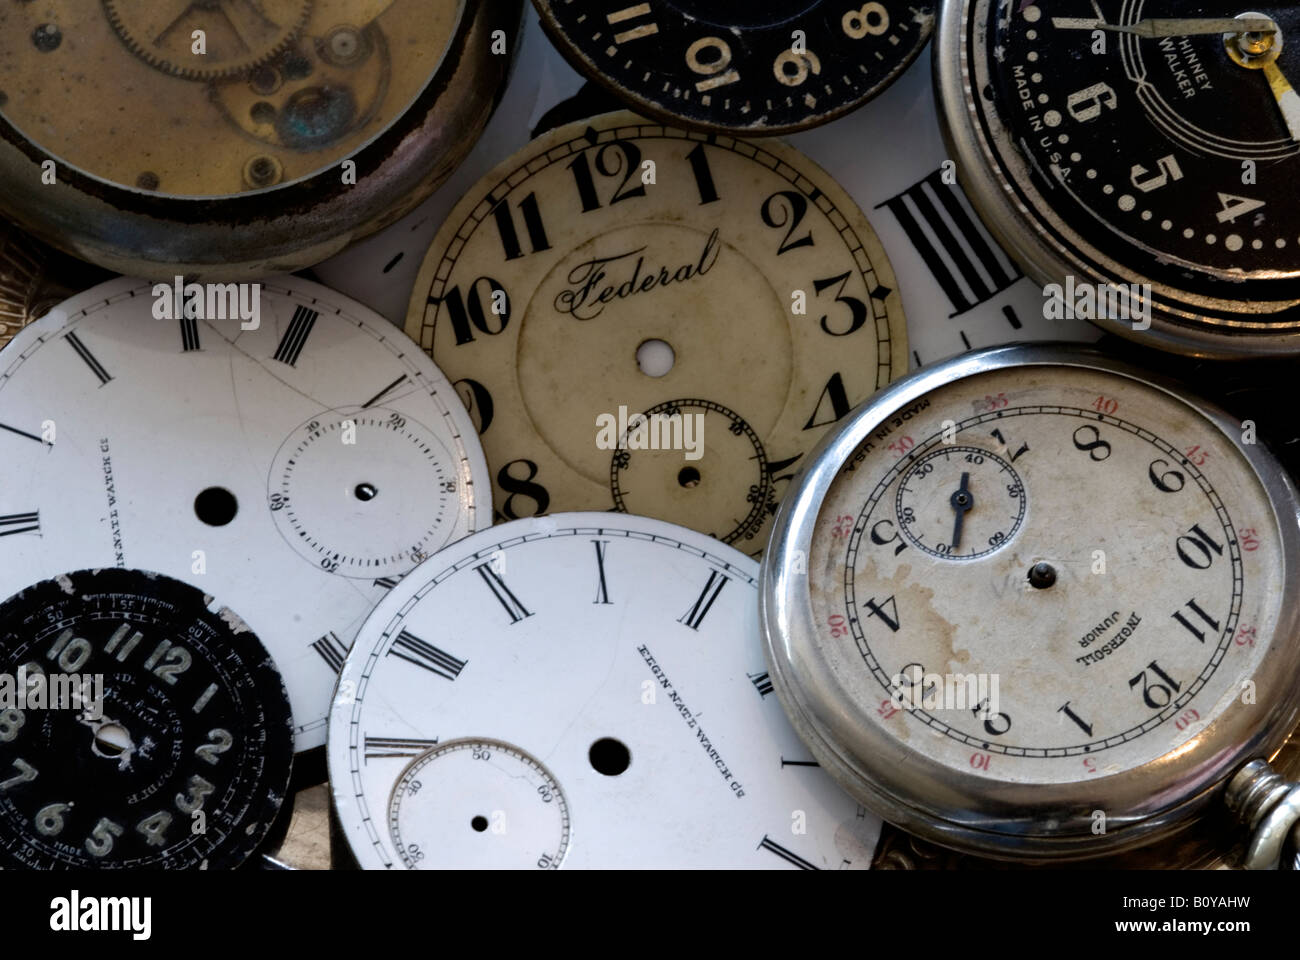 A close up of several old antique watch faces. - Stock Image